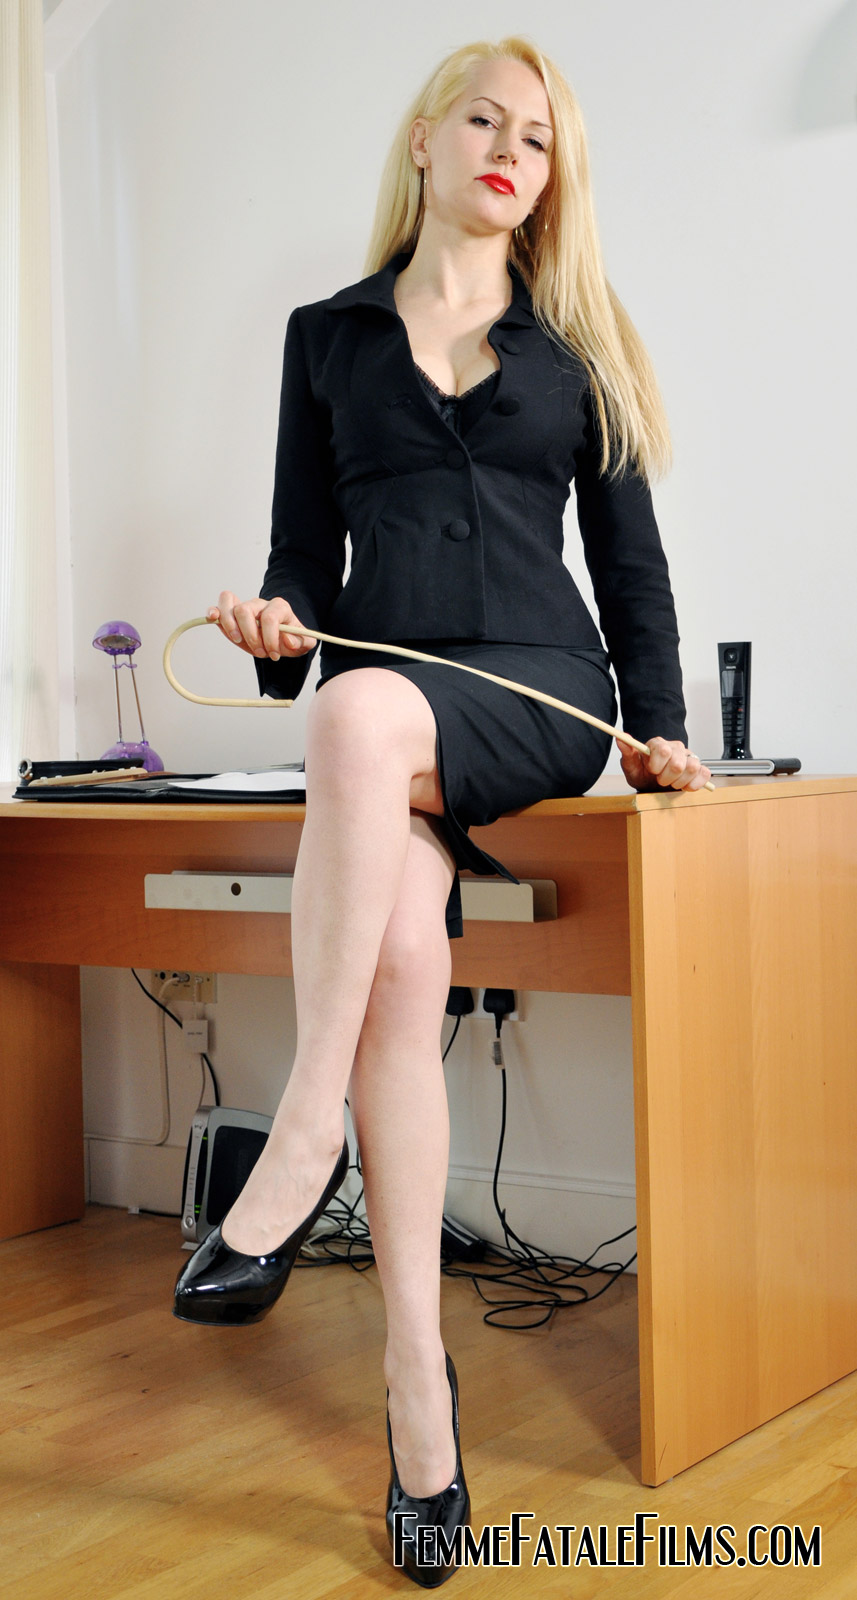 Jennifer goddess punished on principle alone 2